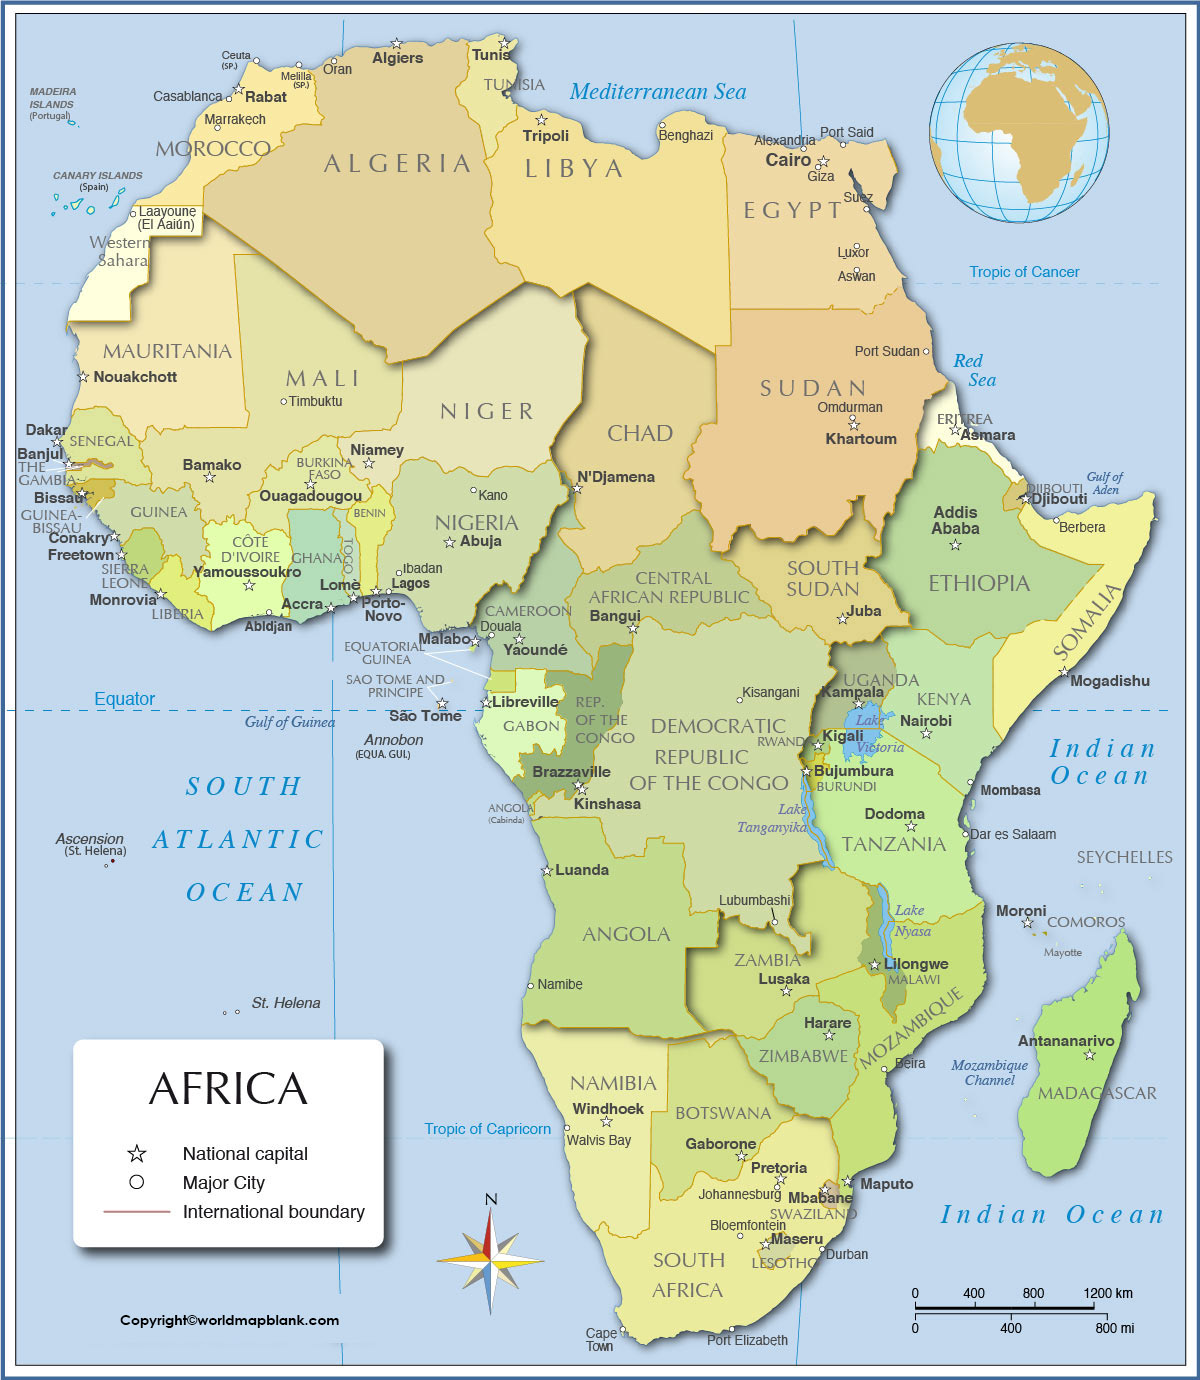 Africa Map with Capitals Labeled